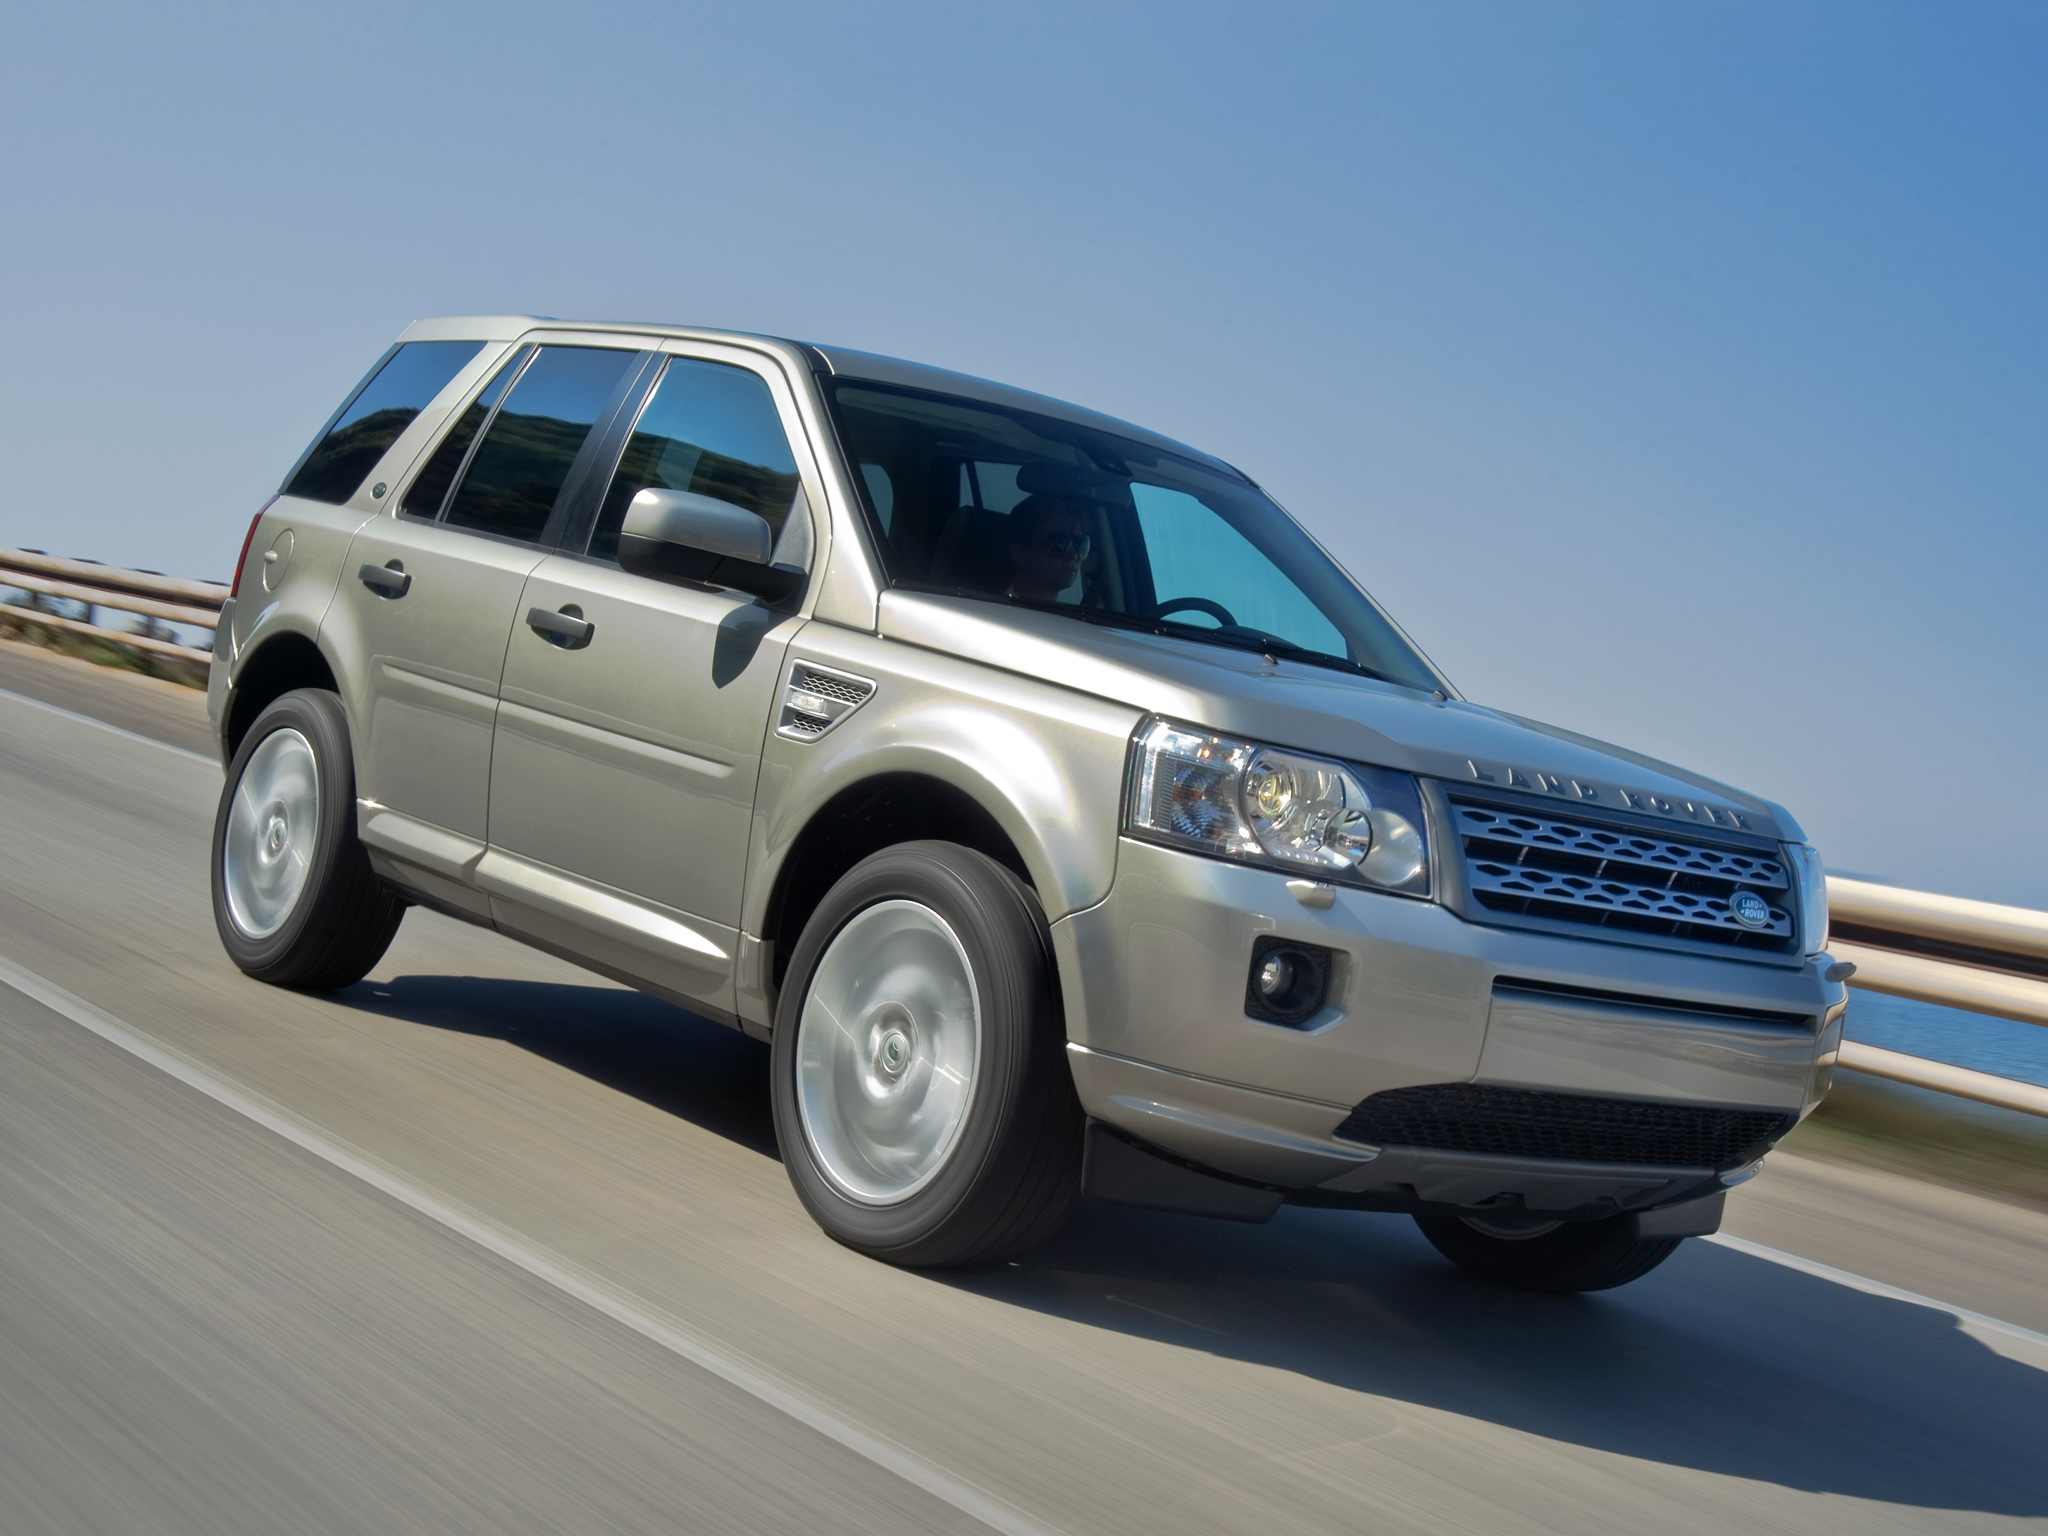 2019 Land Rover Freelander 2 photo - 1